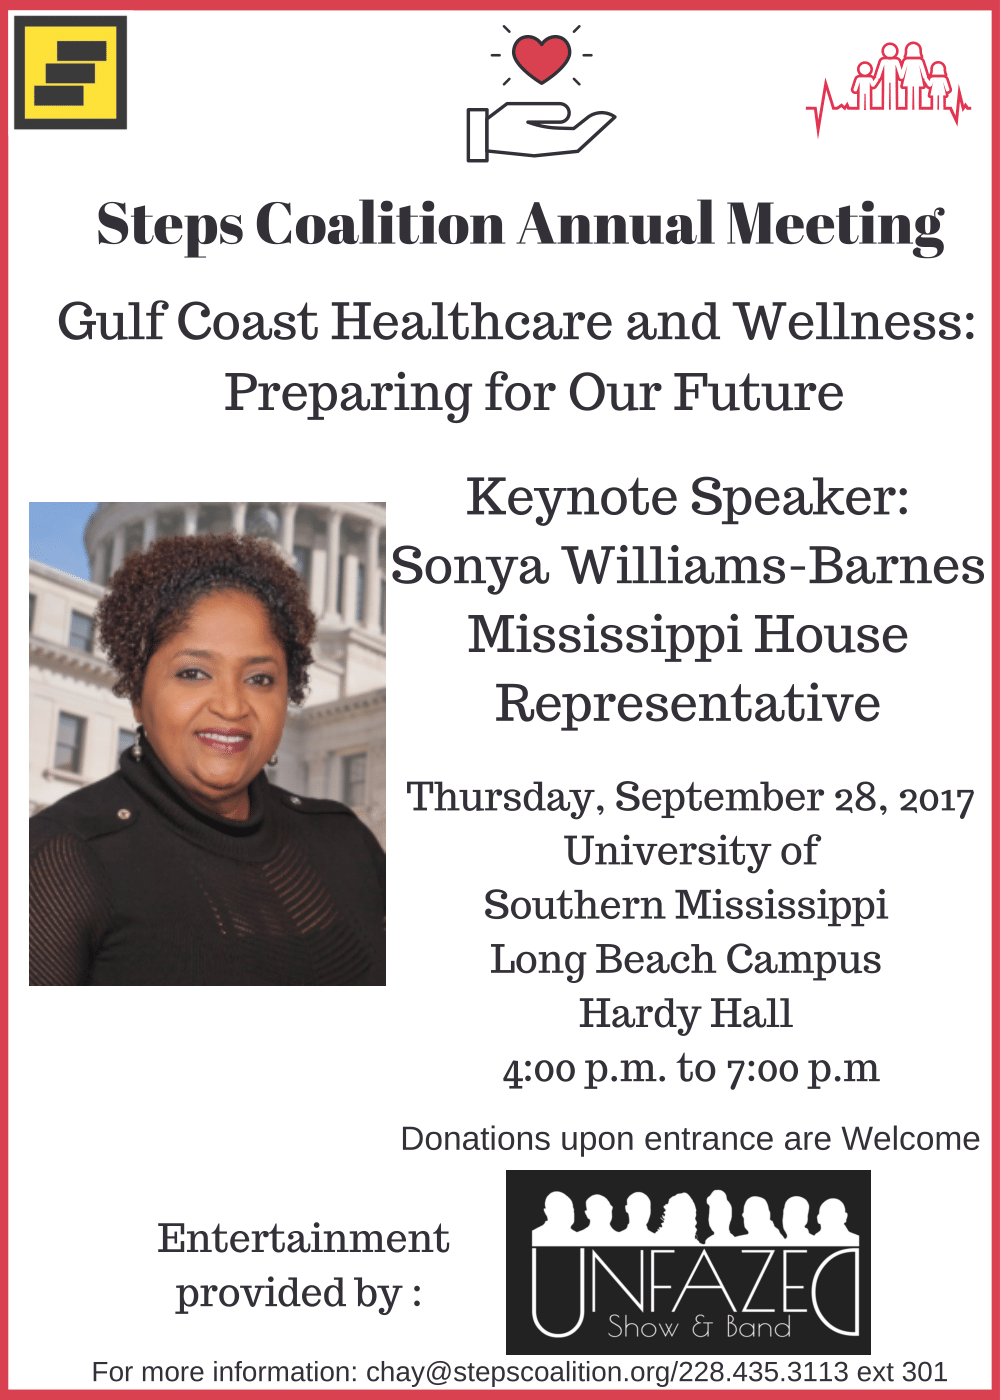 Steps_Coalition_Annual_MeetingTheme__GulfCoast_Healthcare_and_Wellness-Preparing_for_Our_Future-10-1.png